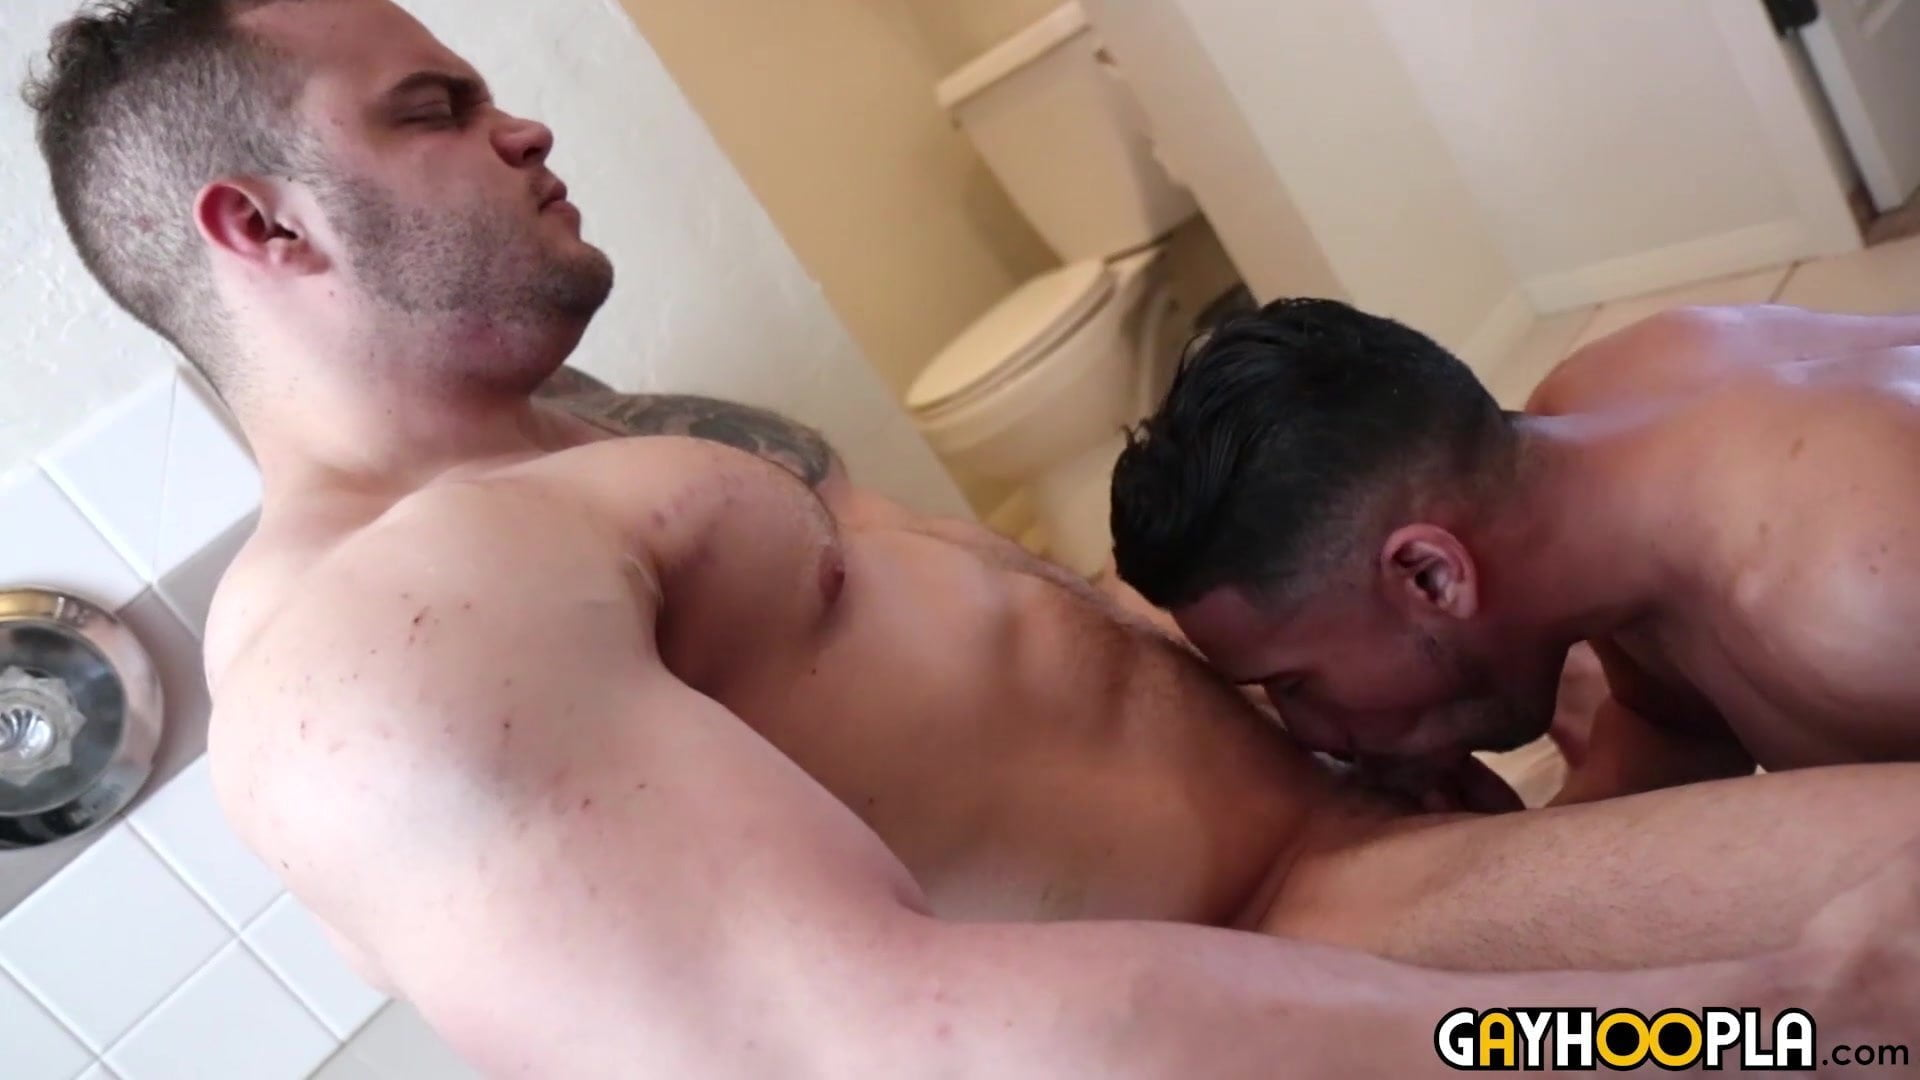 Physique Builder Buck Will get Butt Fucked By Latino Stud